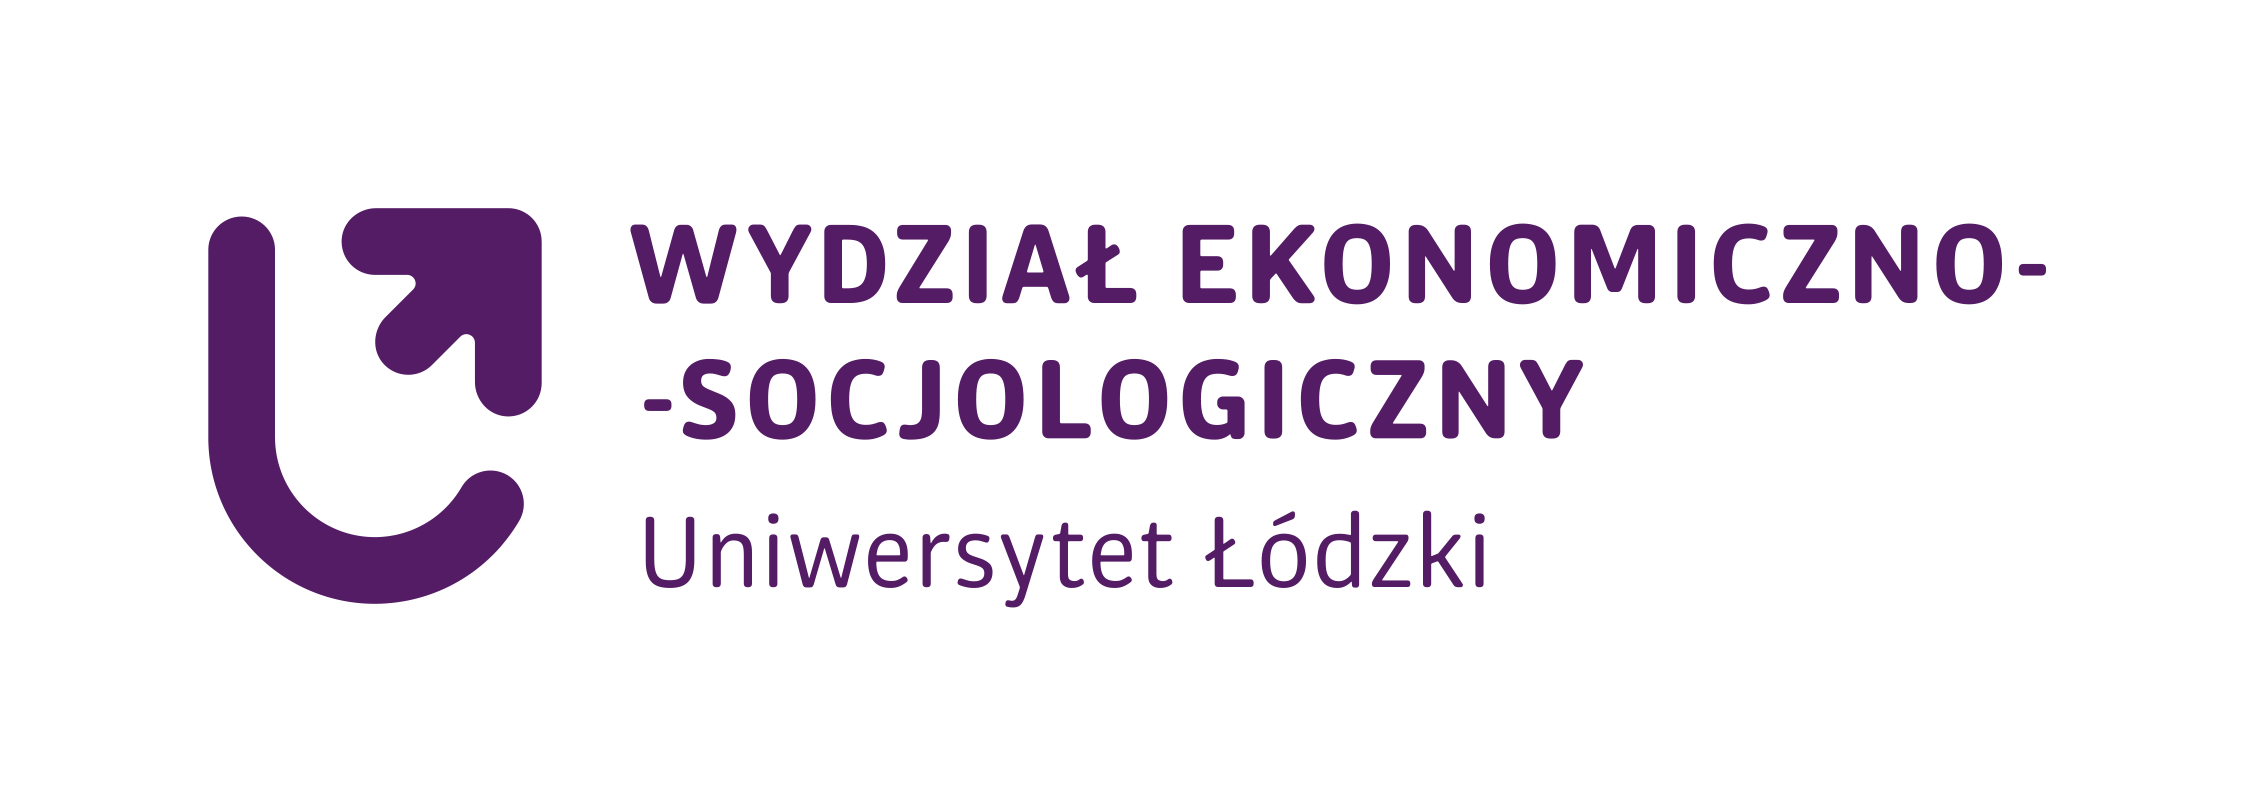 The collection's logo